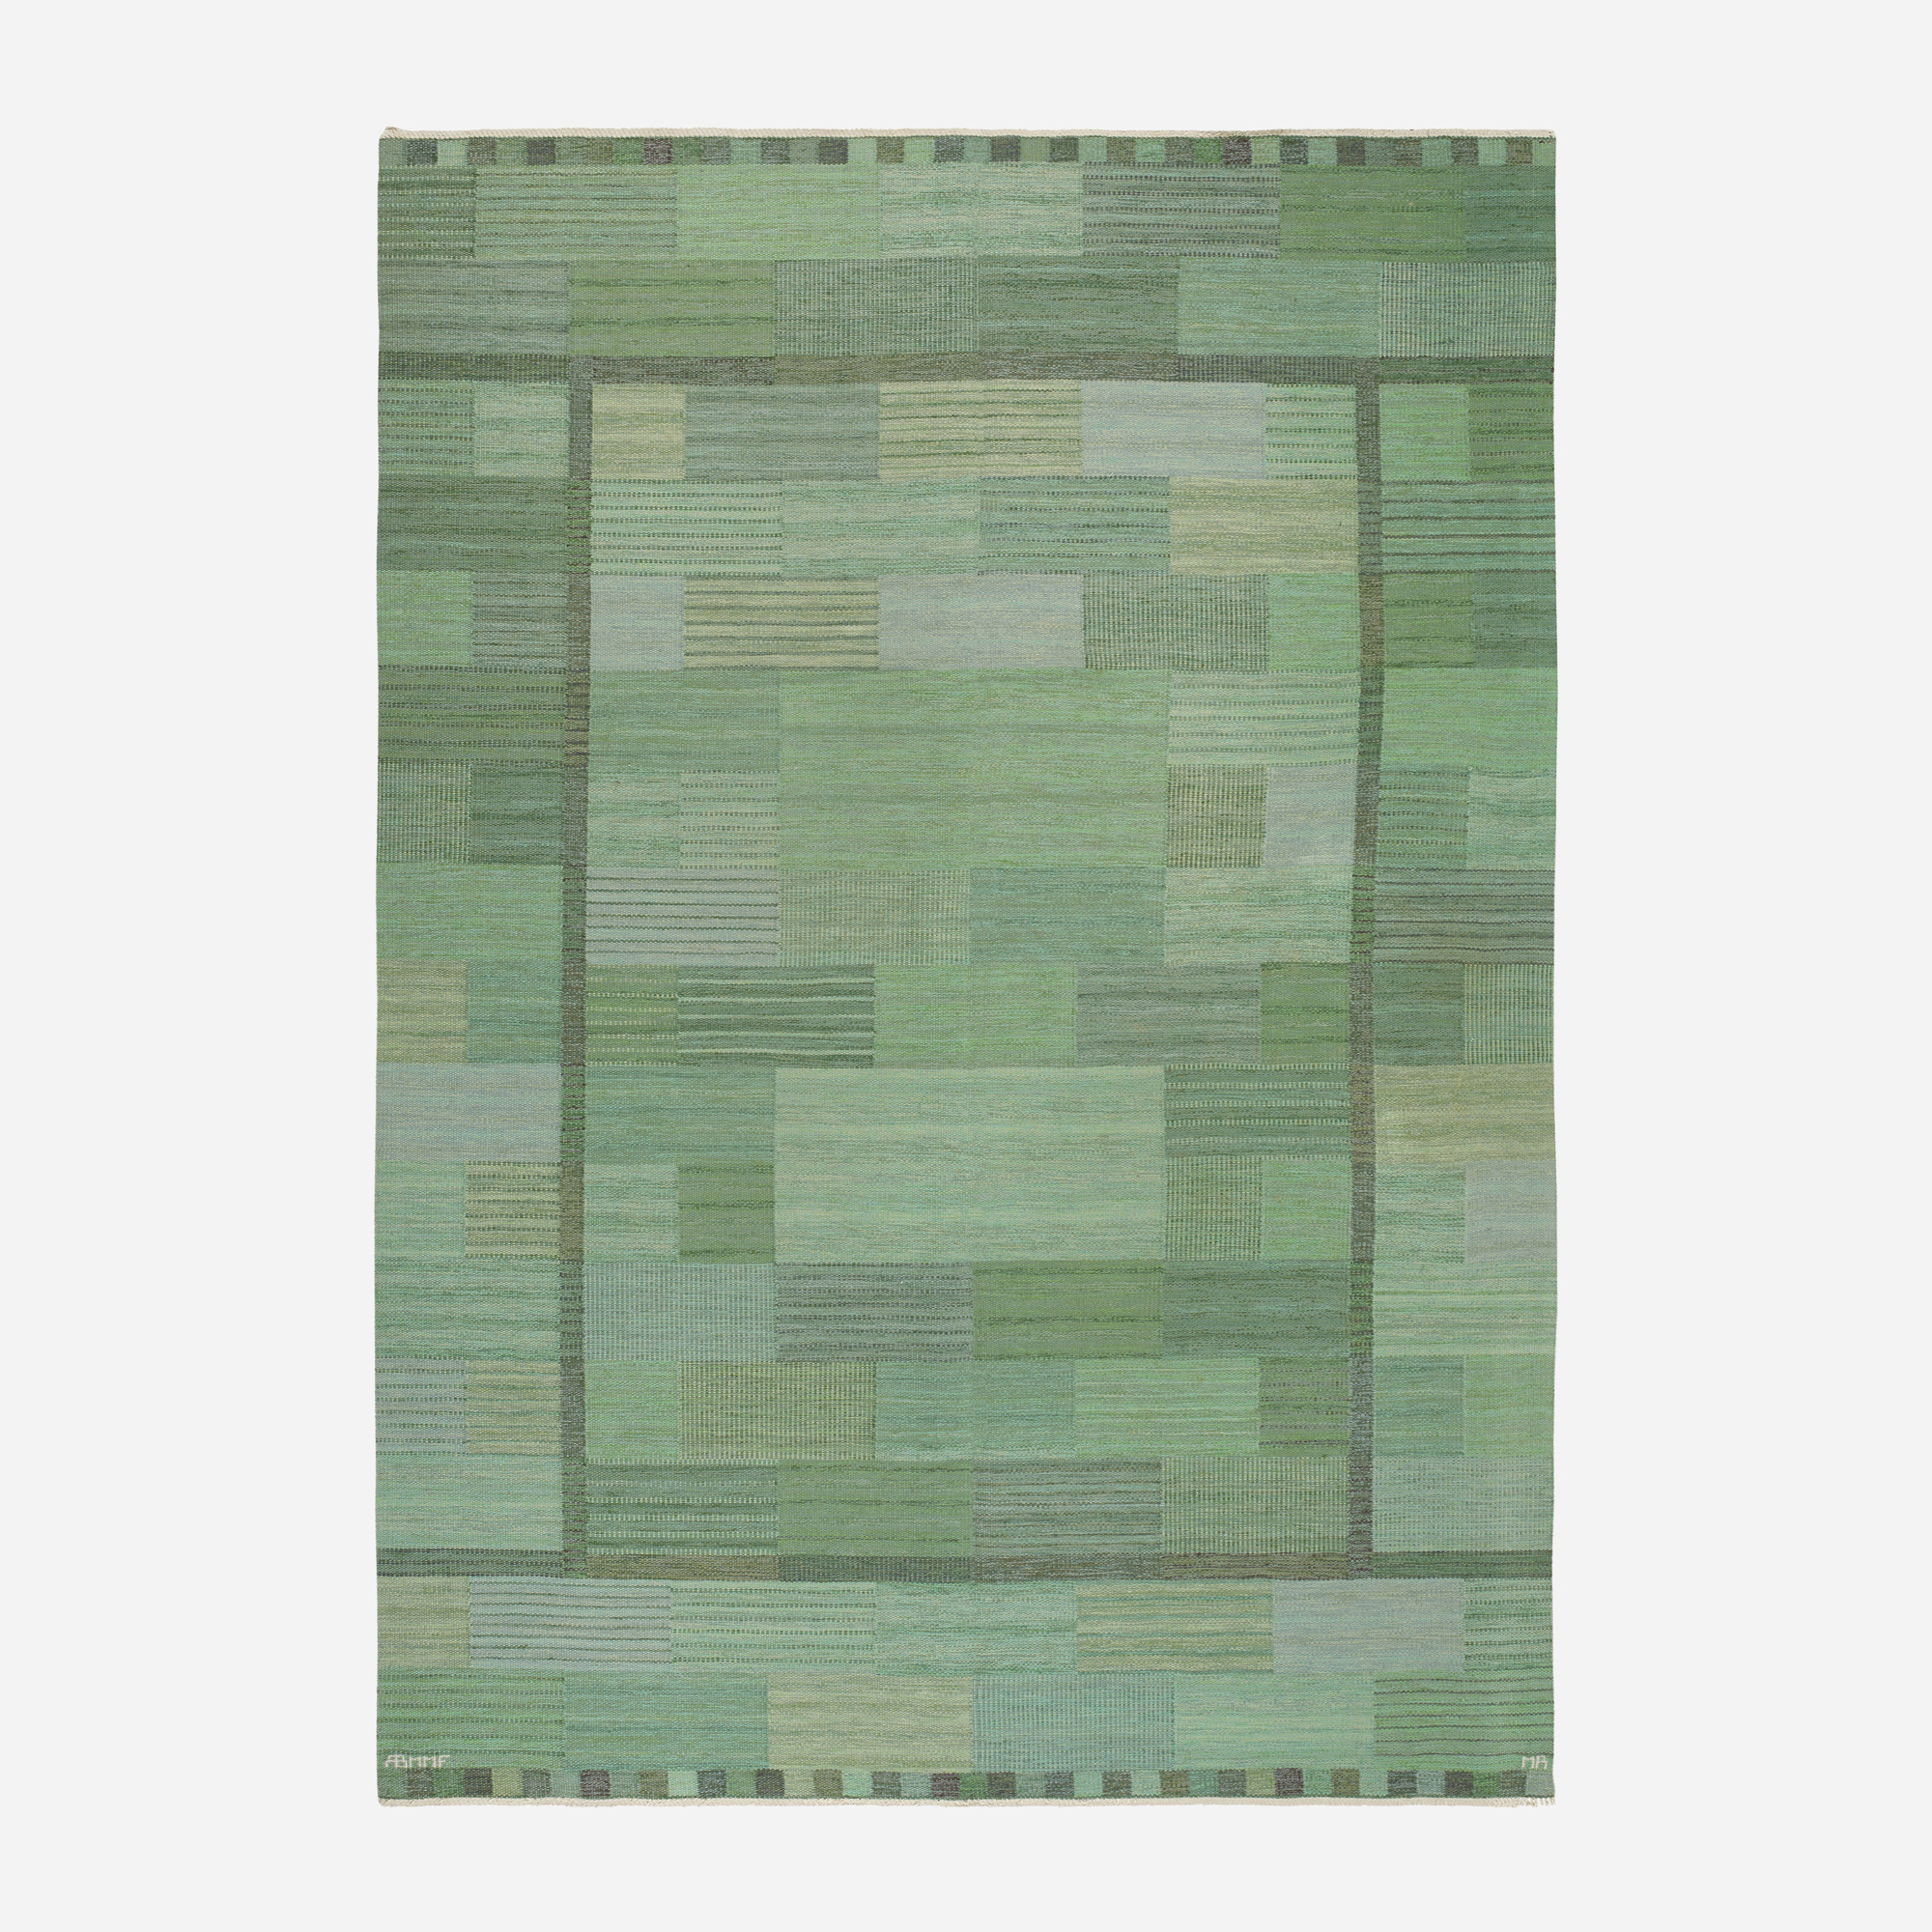 108: Marianne Richter / Fasad flatweave carpet (1 of 2)